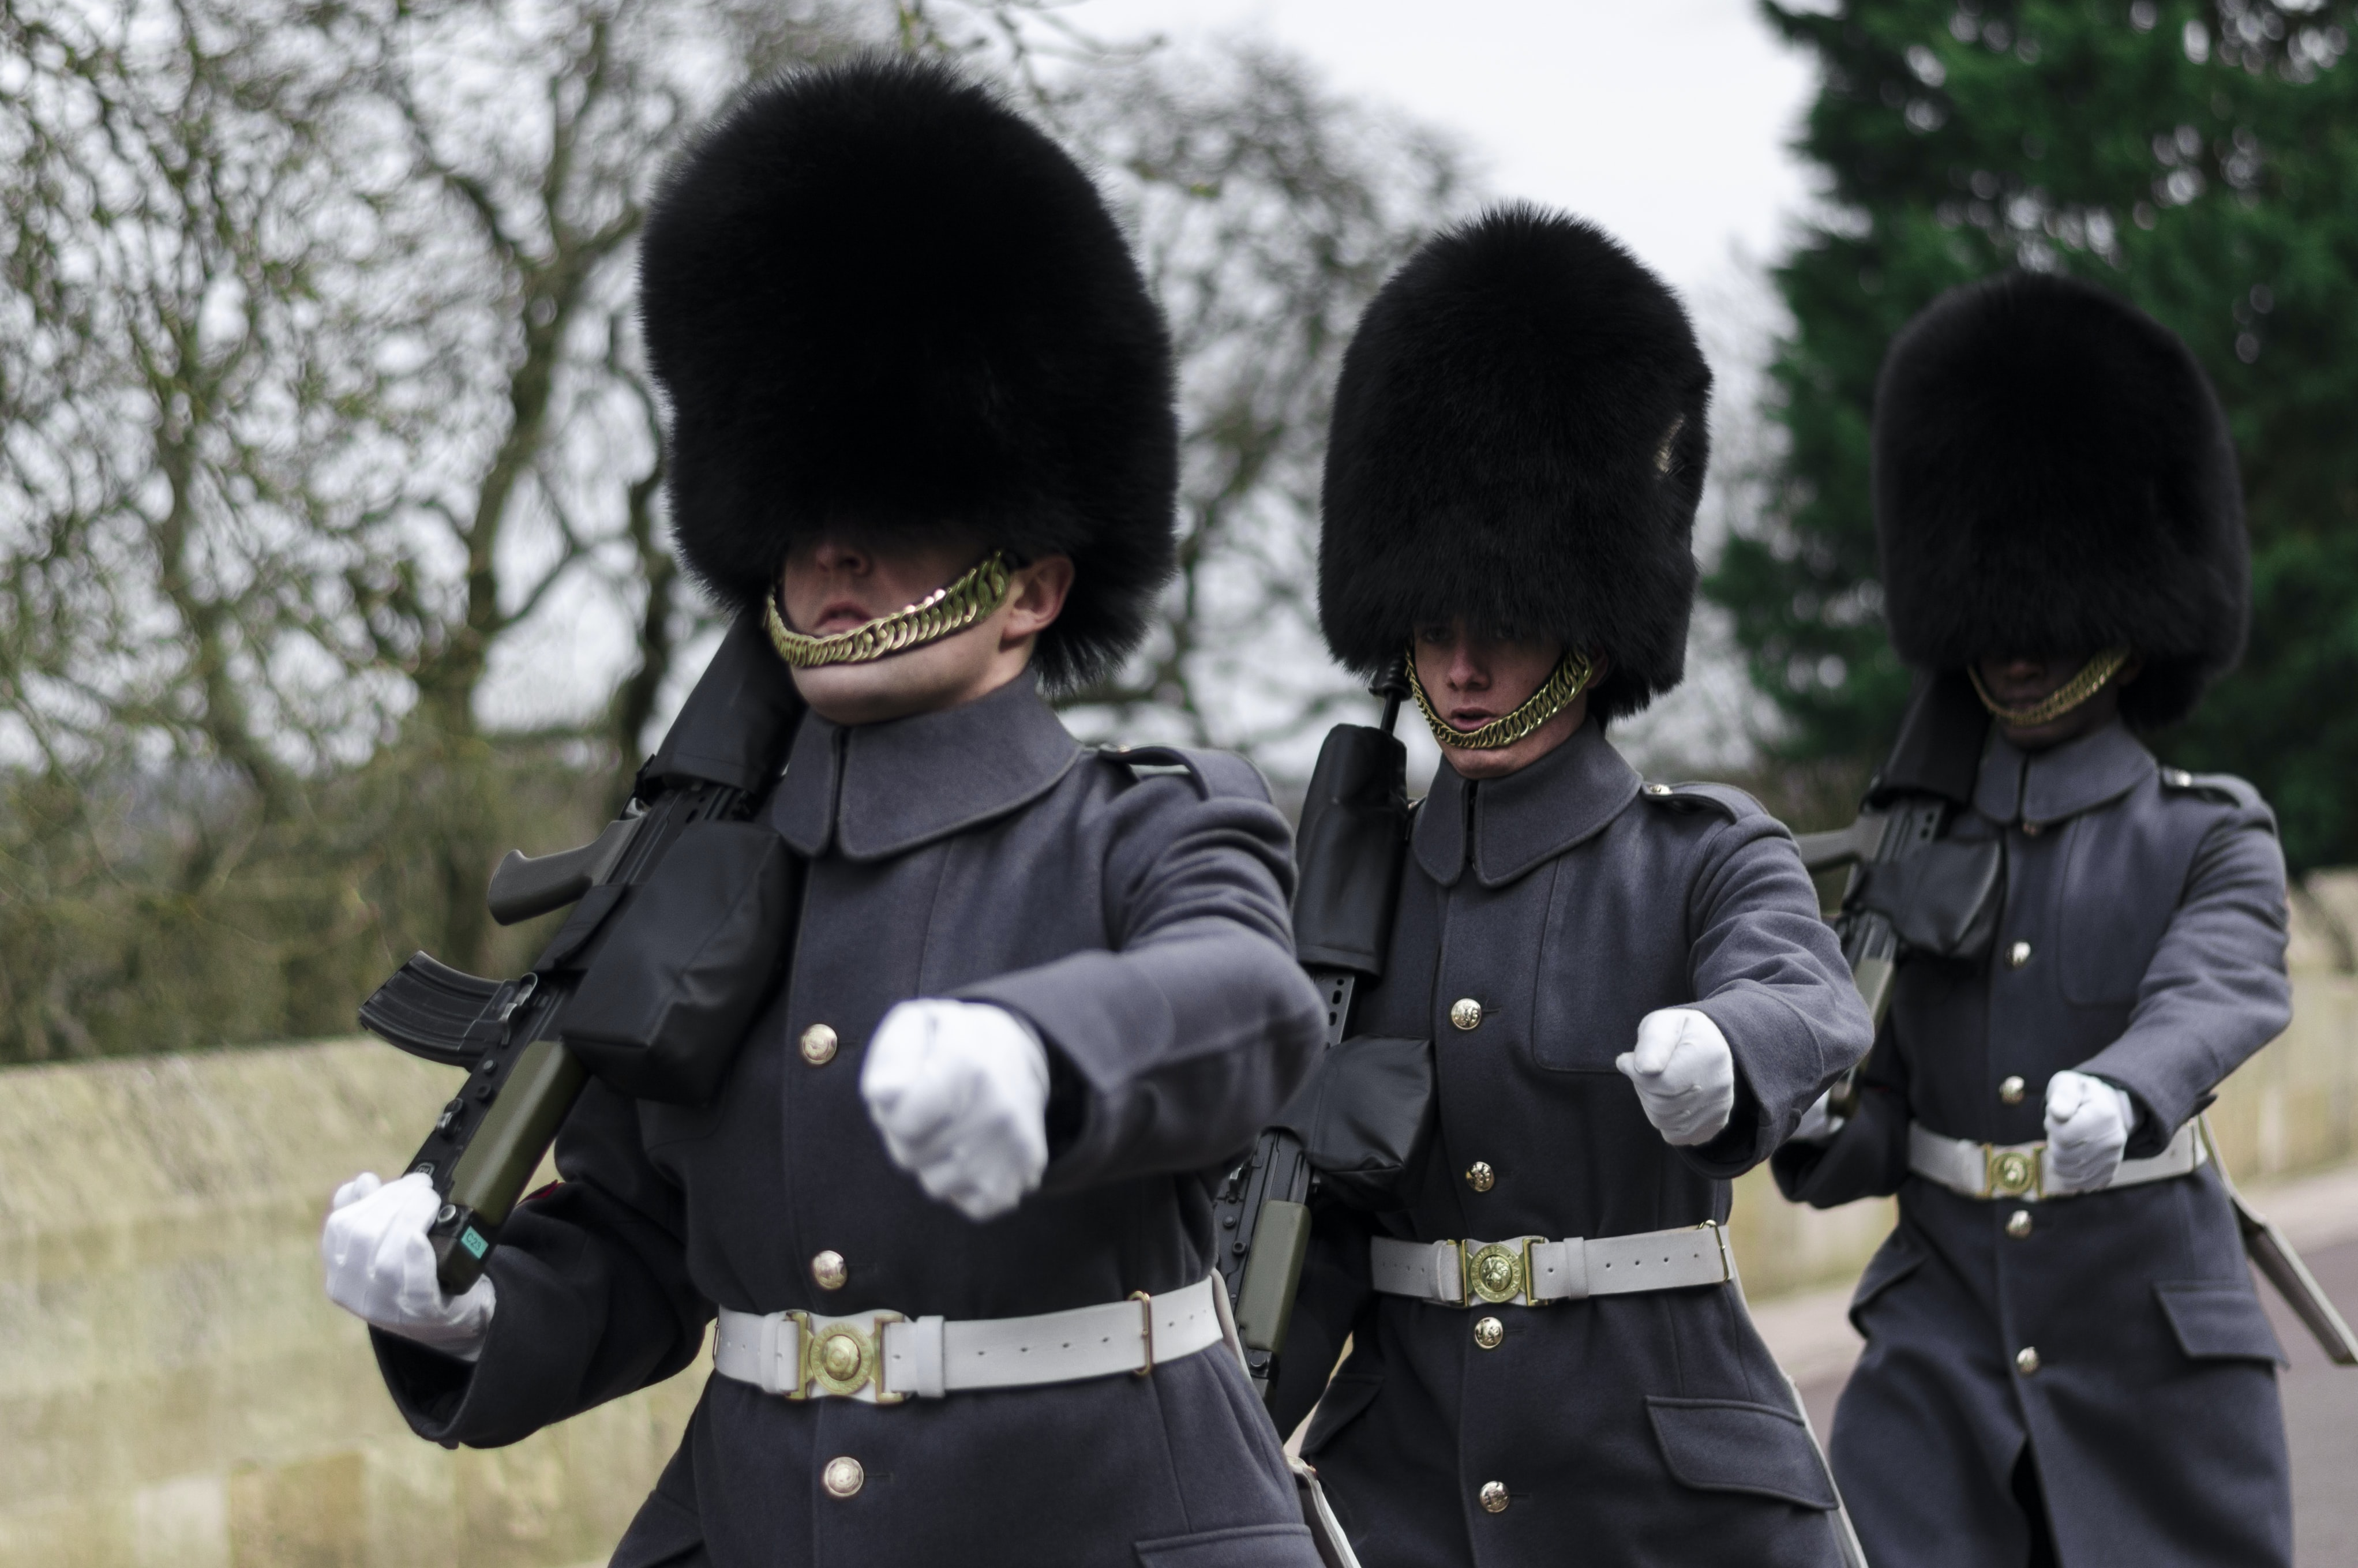 A group of queen's guard men in dark uniforms holding rifles marching in formation